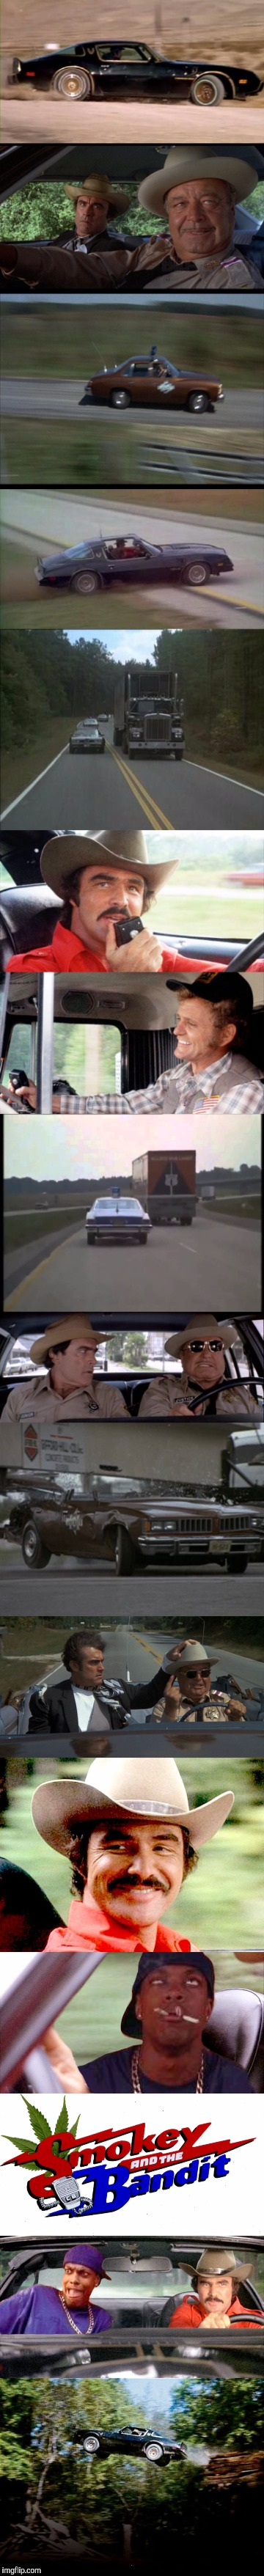 SORRYSALLY | . | image tagged in smokey and the bandit,funny | made w/ Imgflip meme maker